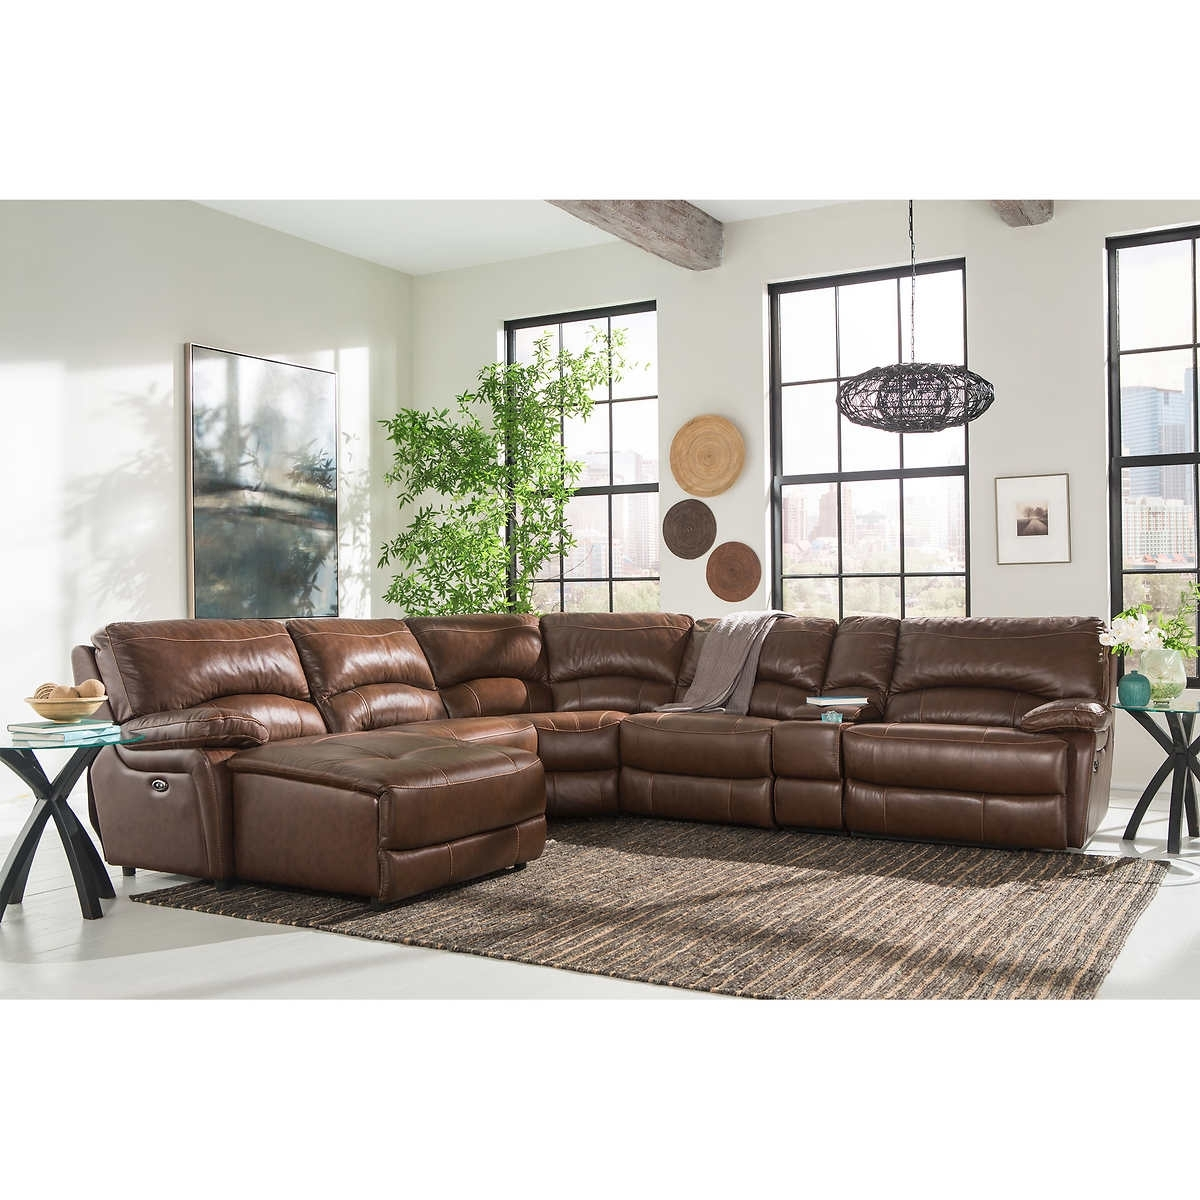 Recent 6 Piece Leather Sectional Sofas Regarding 6 Piece Leather Sectional Sofa – Radiovannes (View 12 of 15)